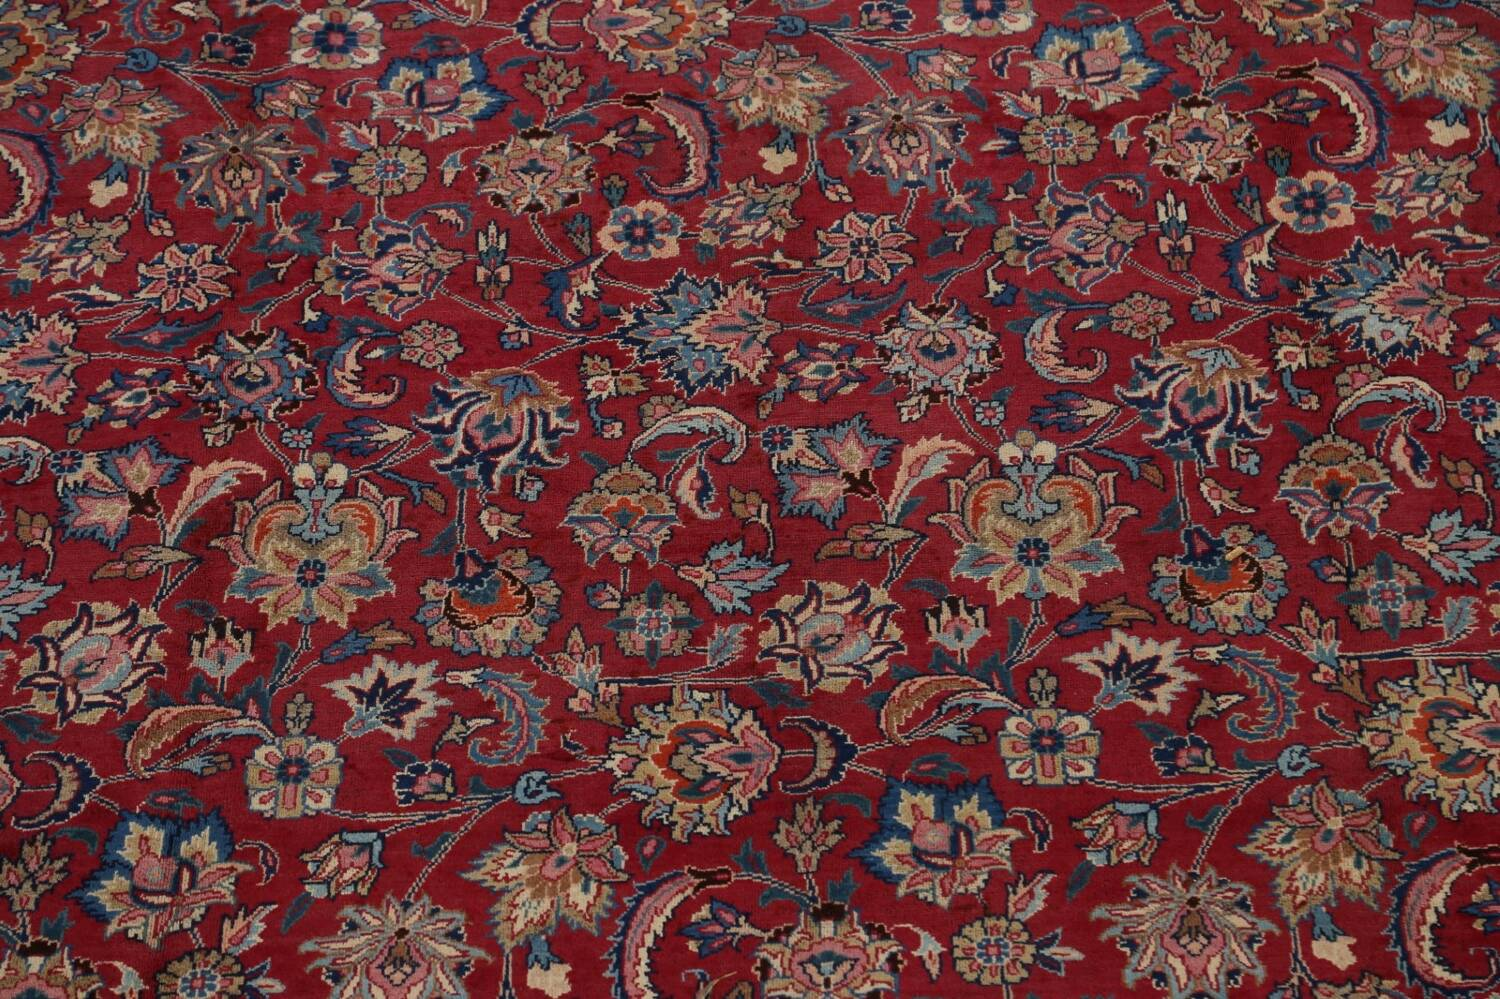 Antique Floral Vegetable Dye Mashad Persian Area Rug 10x13 image 4